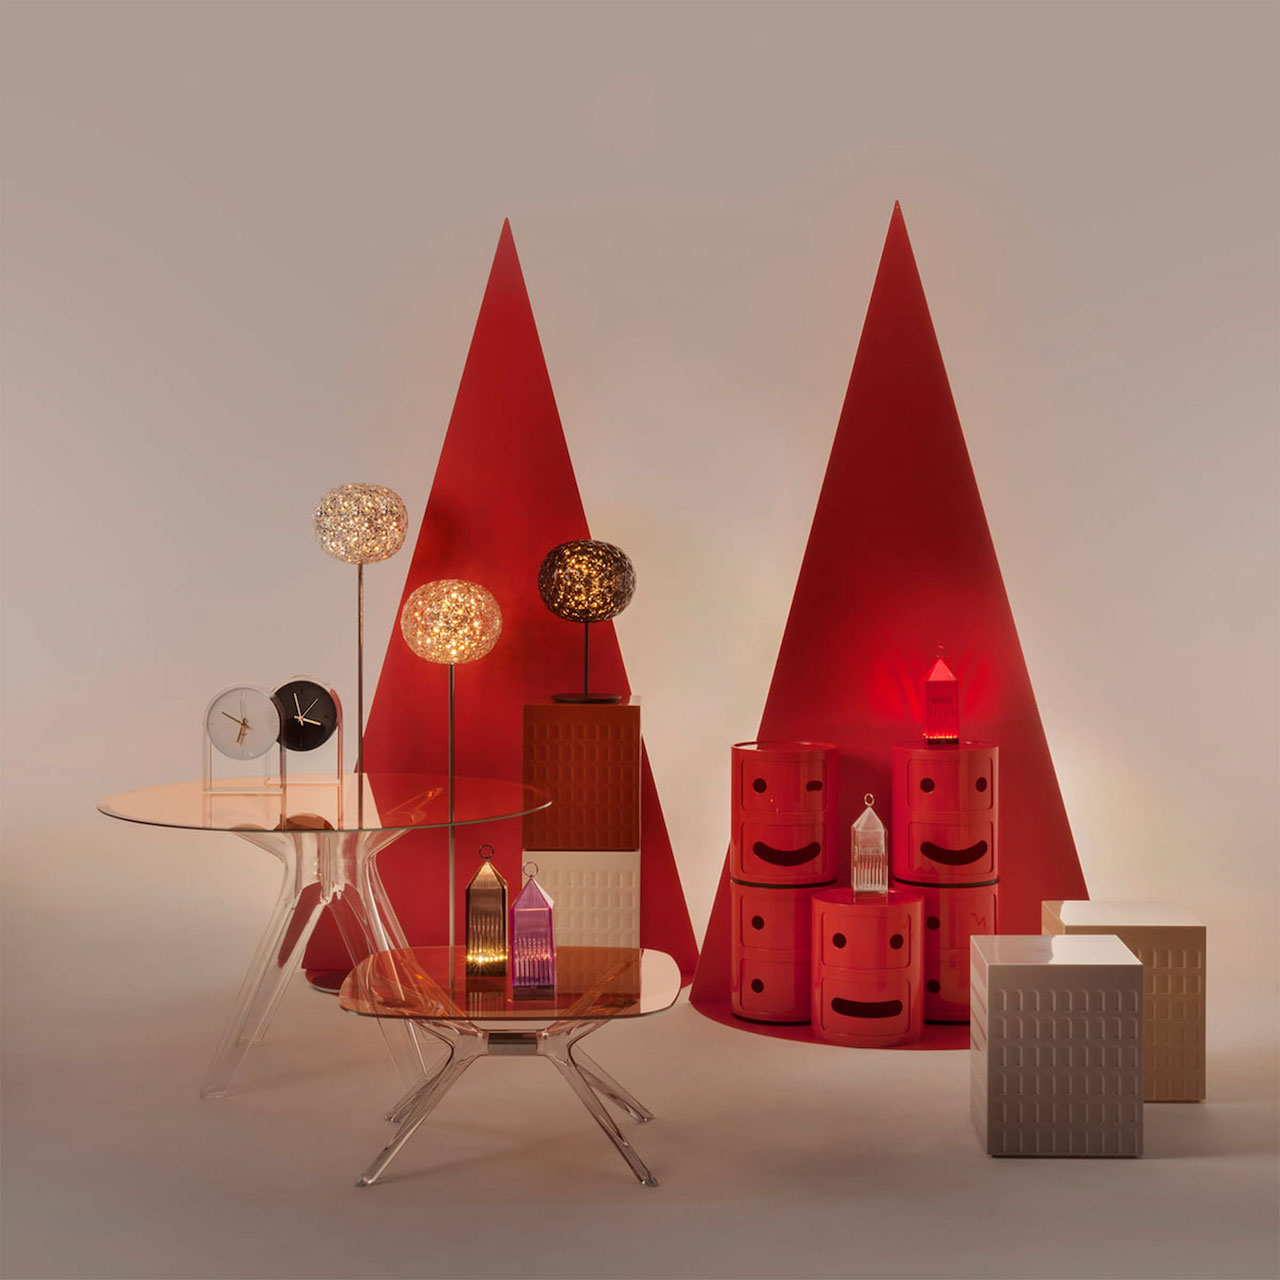 Christmas gift ideas interior design stores in florence for Bianchi arredamenti firenze